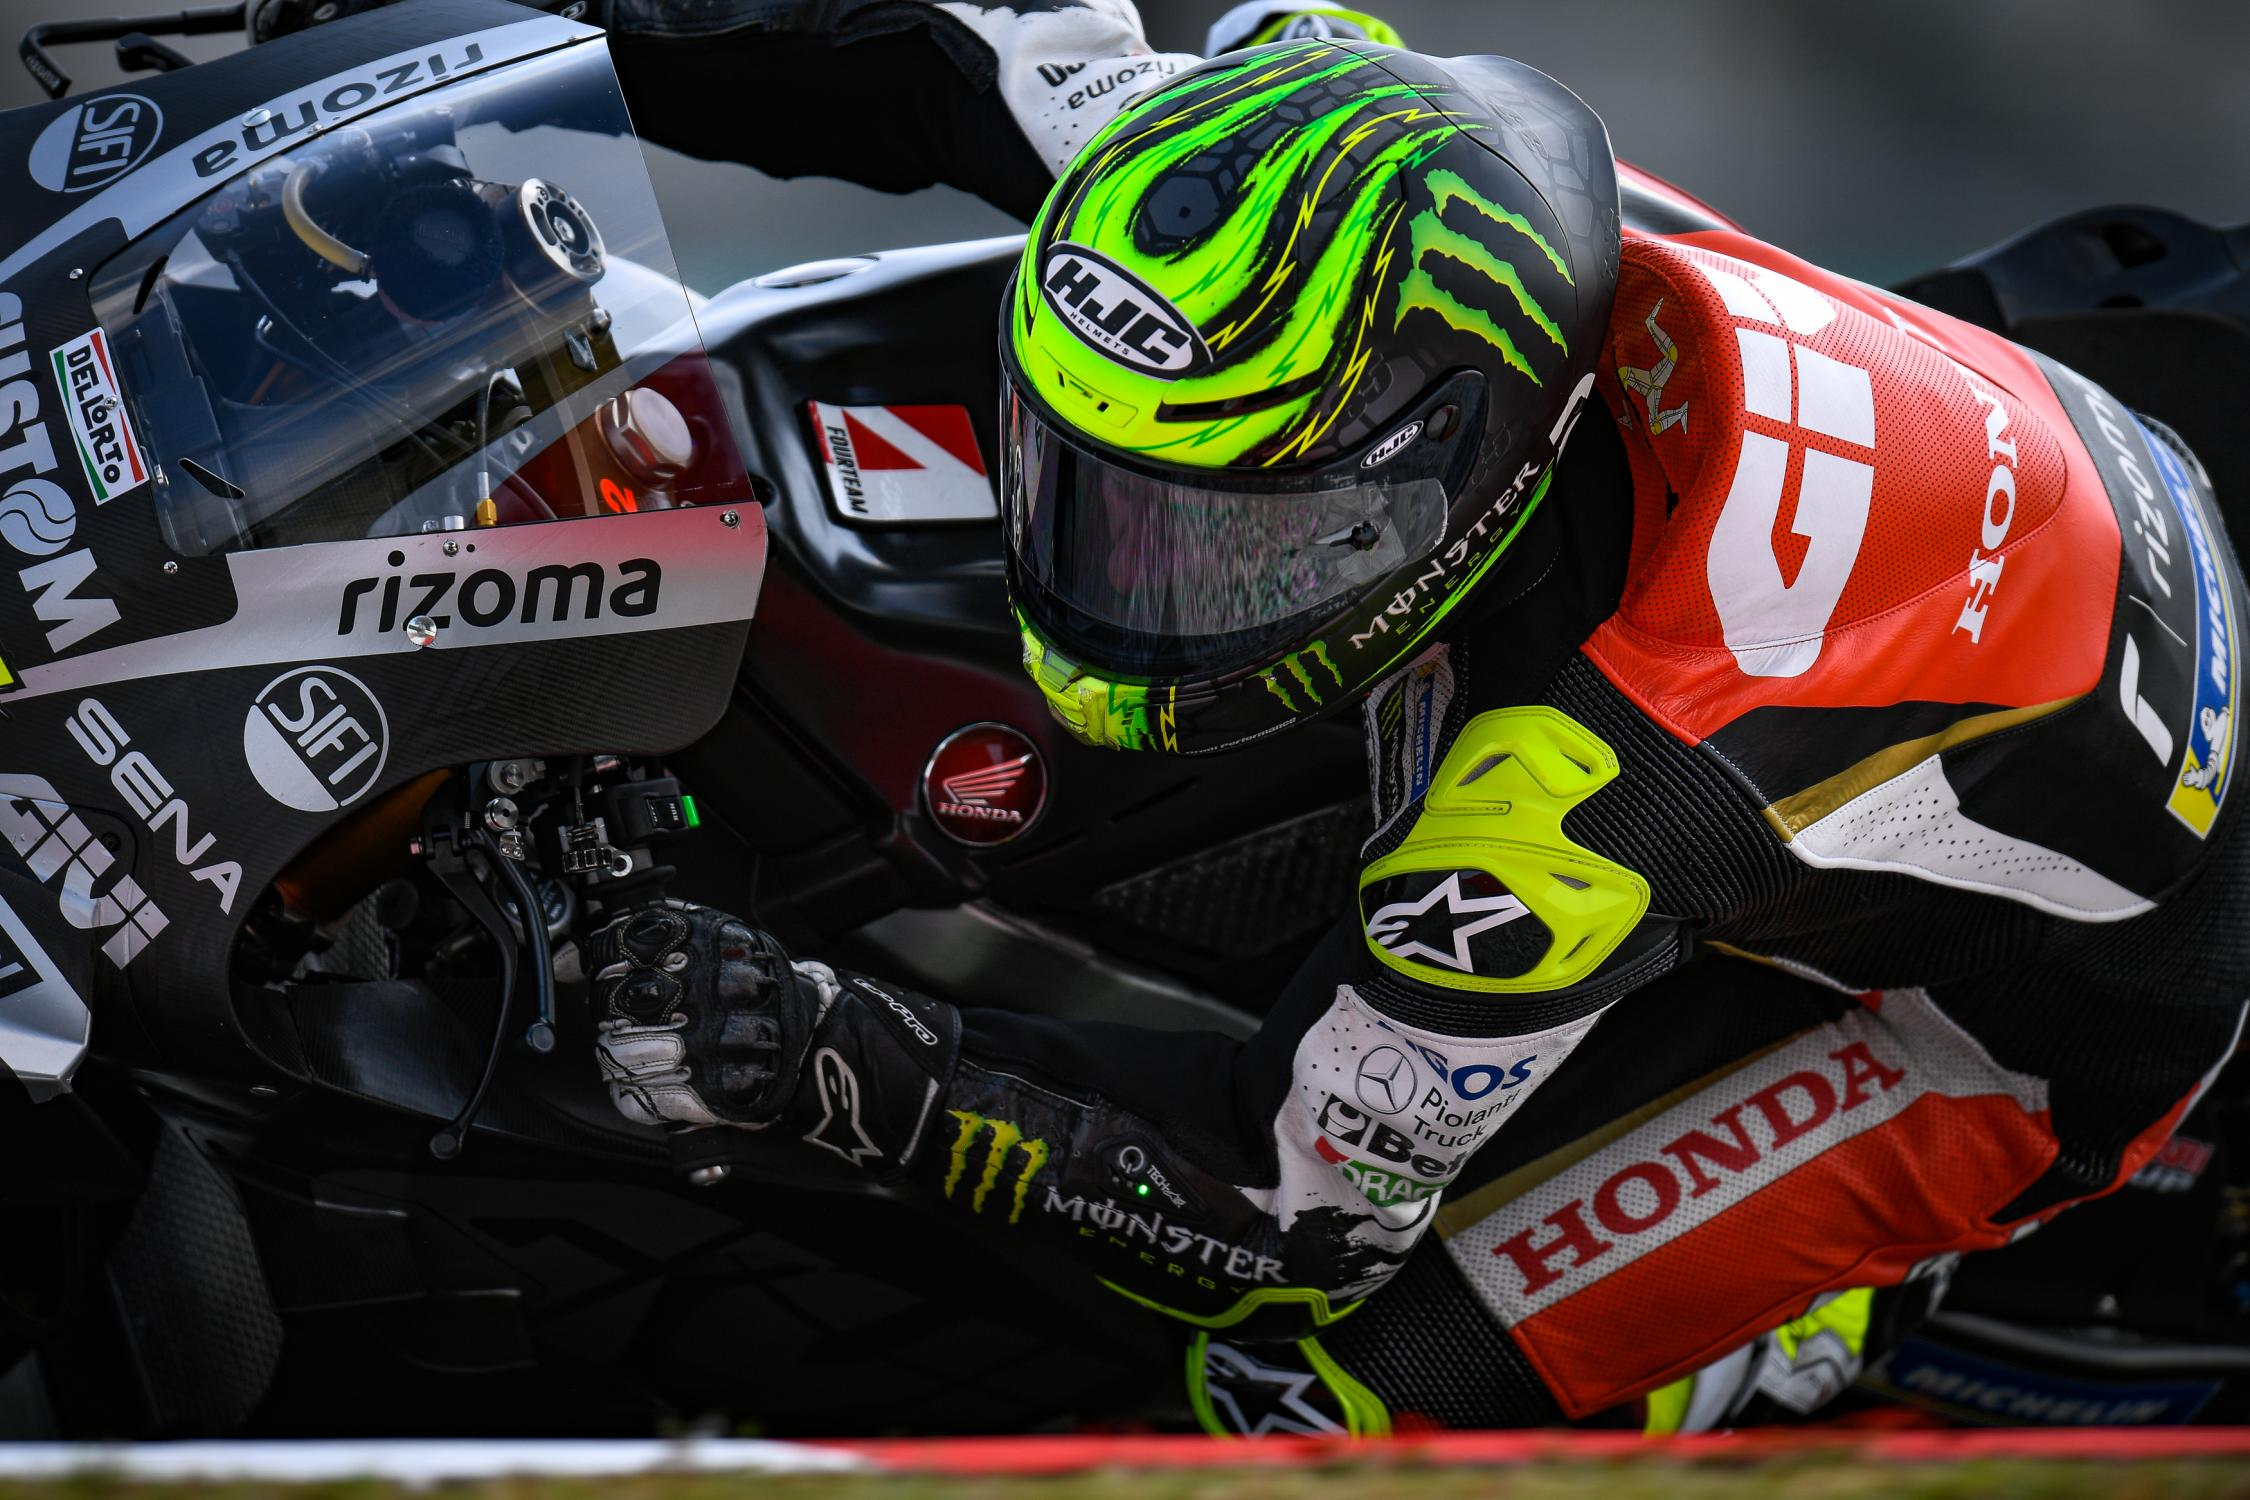 Crutchlow fastest Honda on first day in Sepang